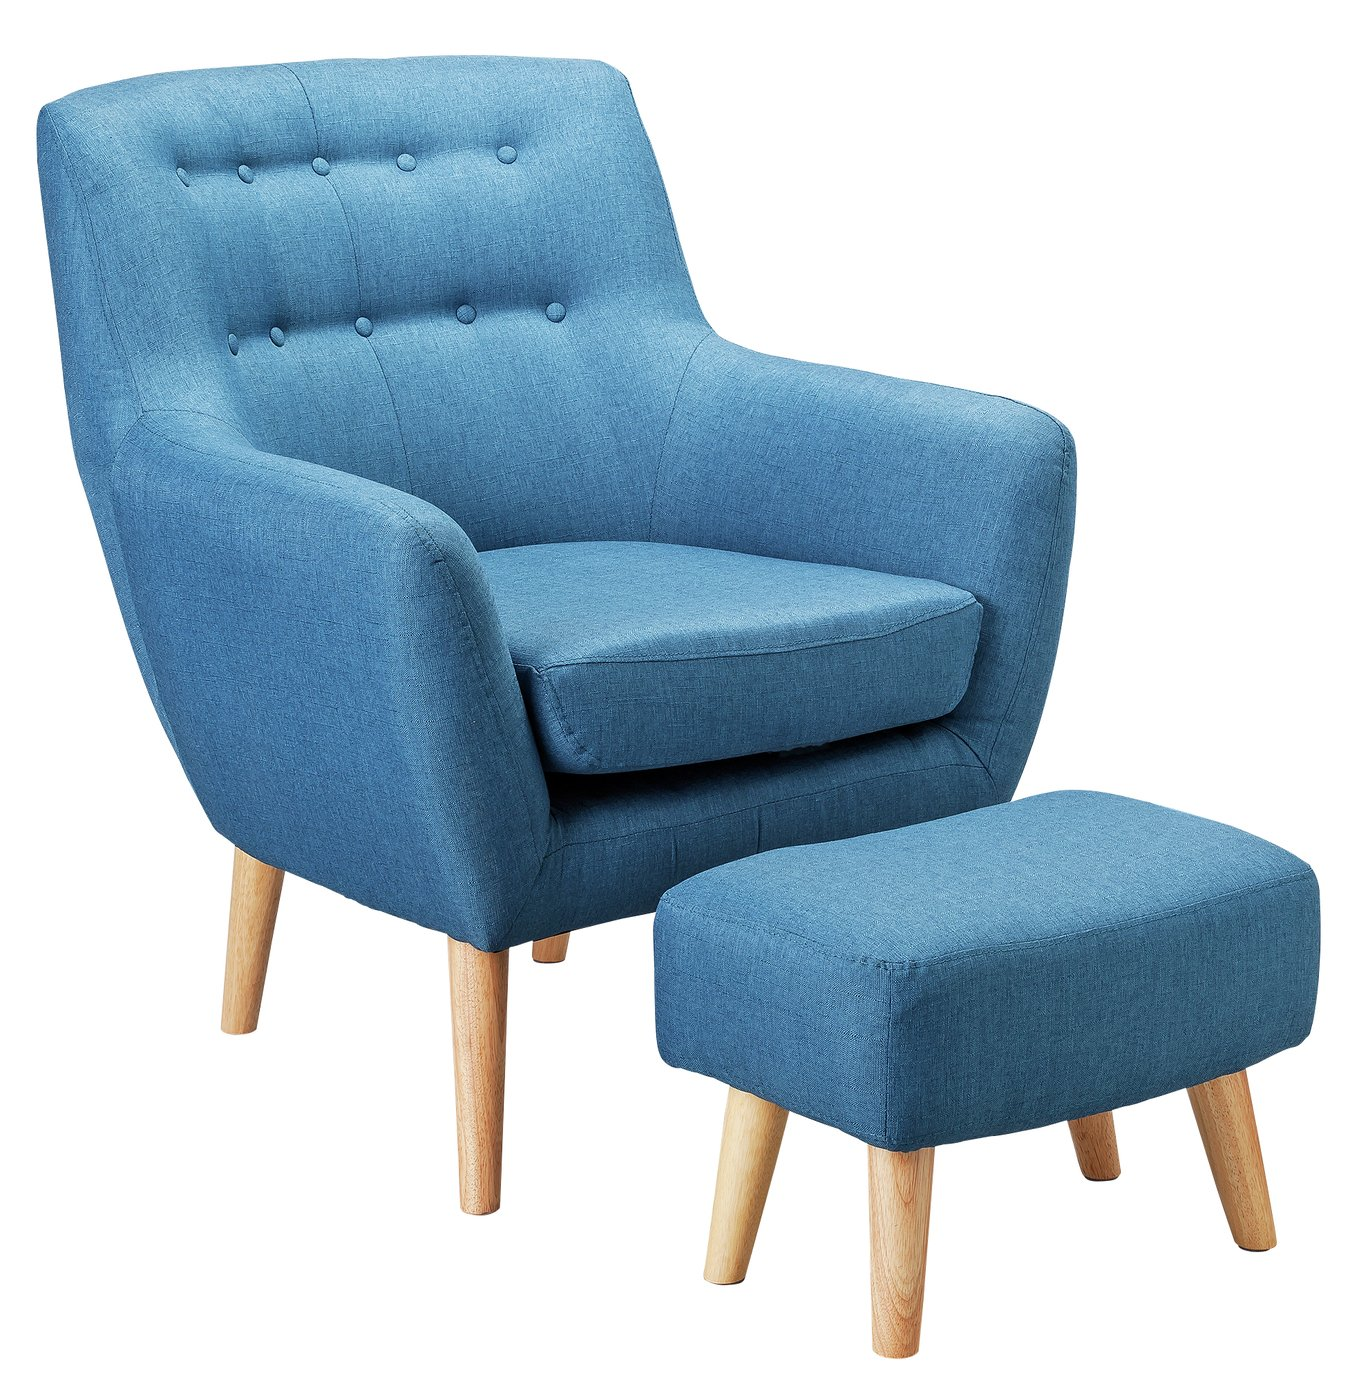 Argos Home Otis Fabric Accent Chair And Footstool Blue 5715644 Argos Price Tracker Pricehistory Co Uk